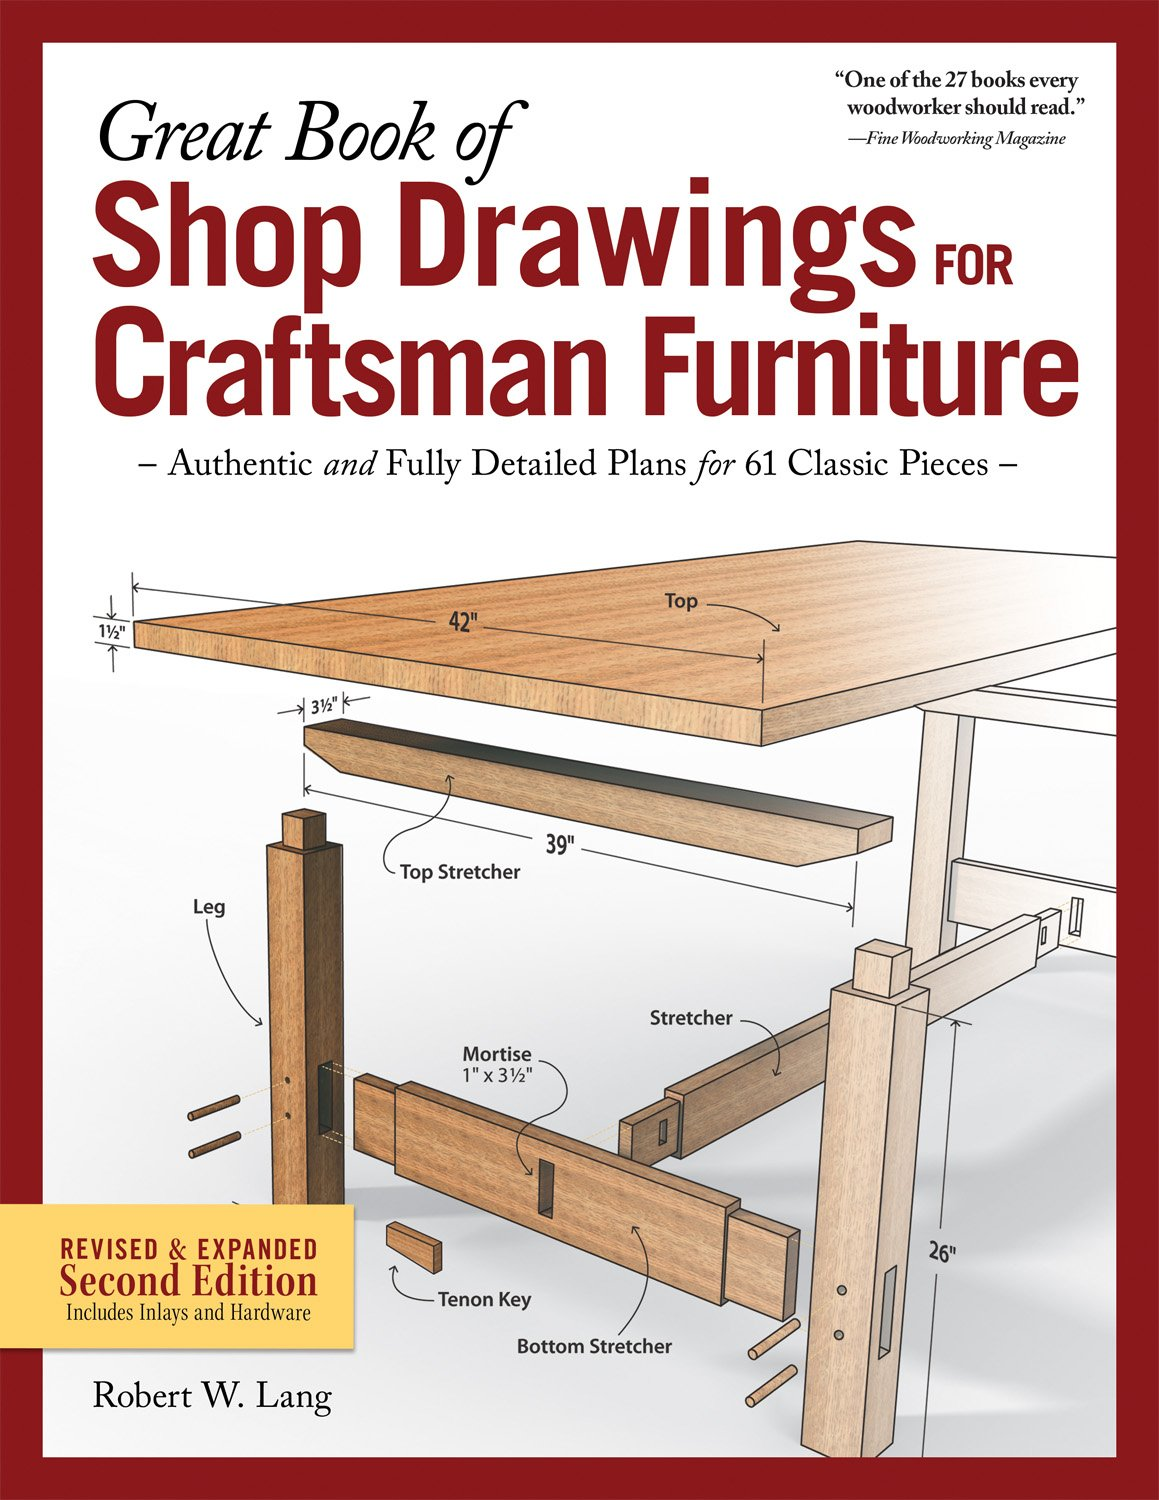 Great Book of Shop Drawings for Craftsman Furniture, Revised & Expanded Second Edition: Authentic and Fully Detailed Plans for 61 Classic Pieces (Fox Chapel Publishing) Complete Full-Perspective Views